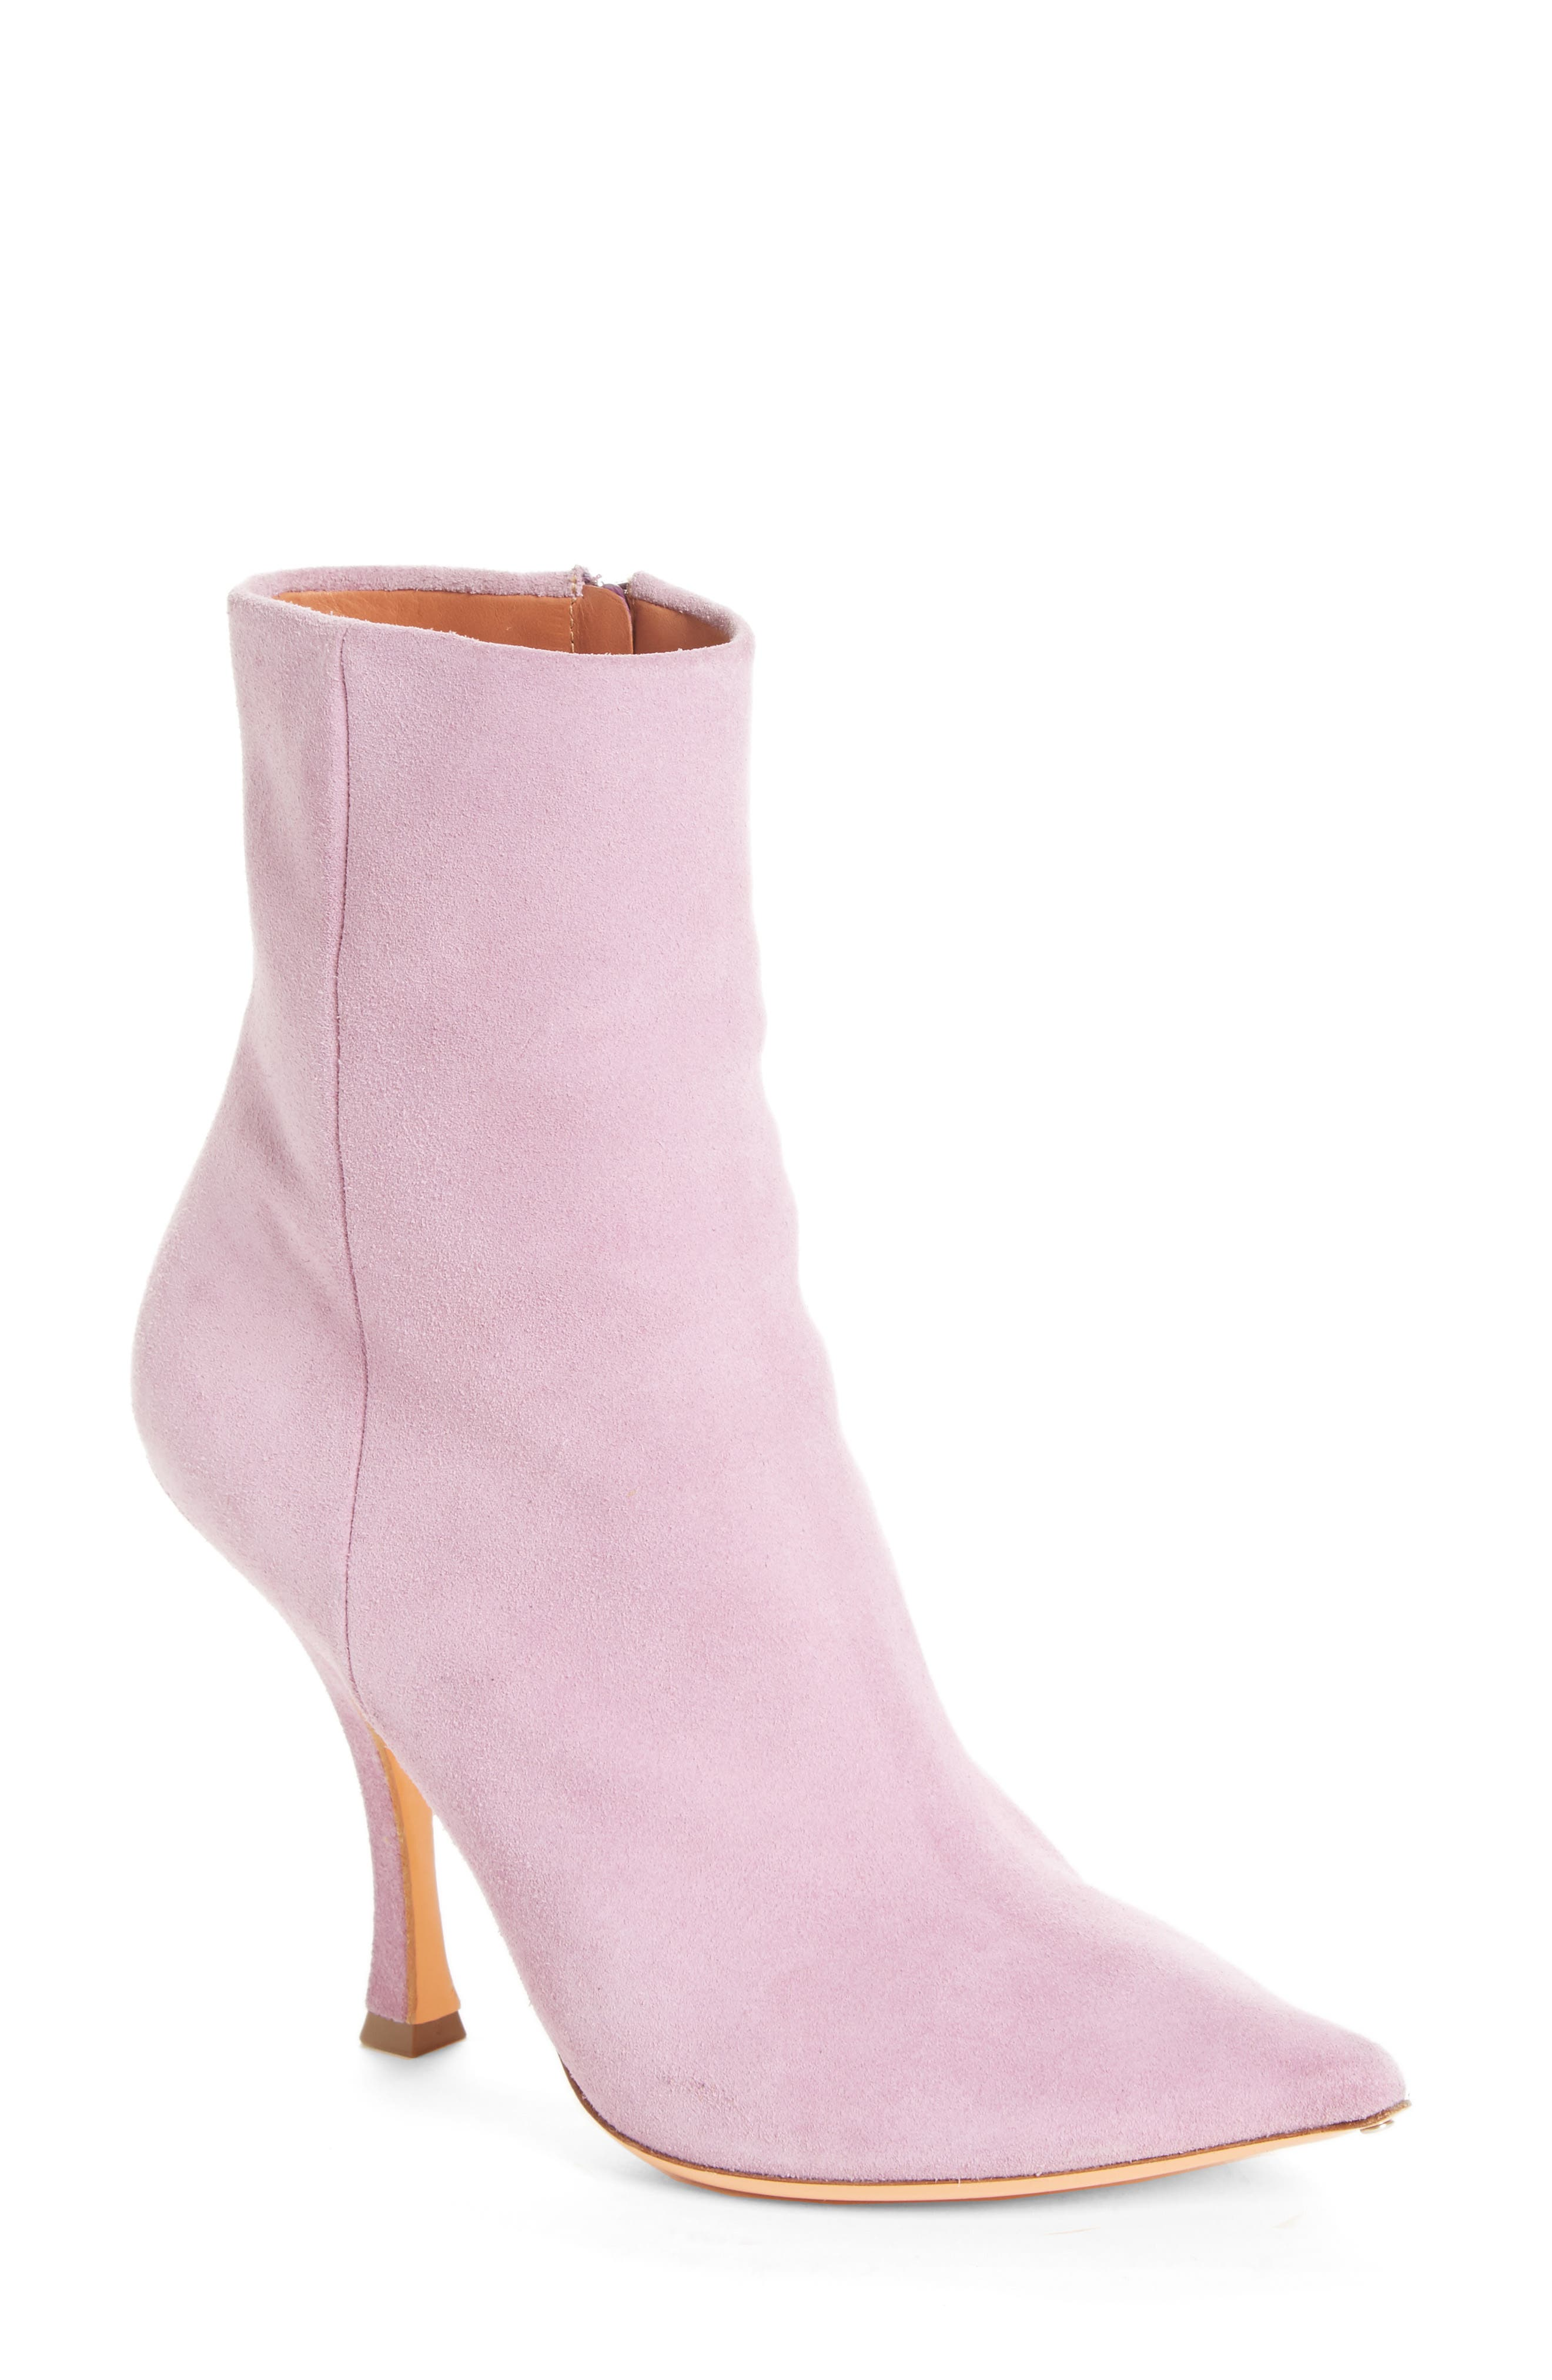 Suede Ankle Boot,                         Main,                         color, 500